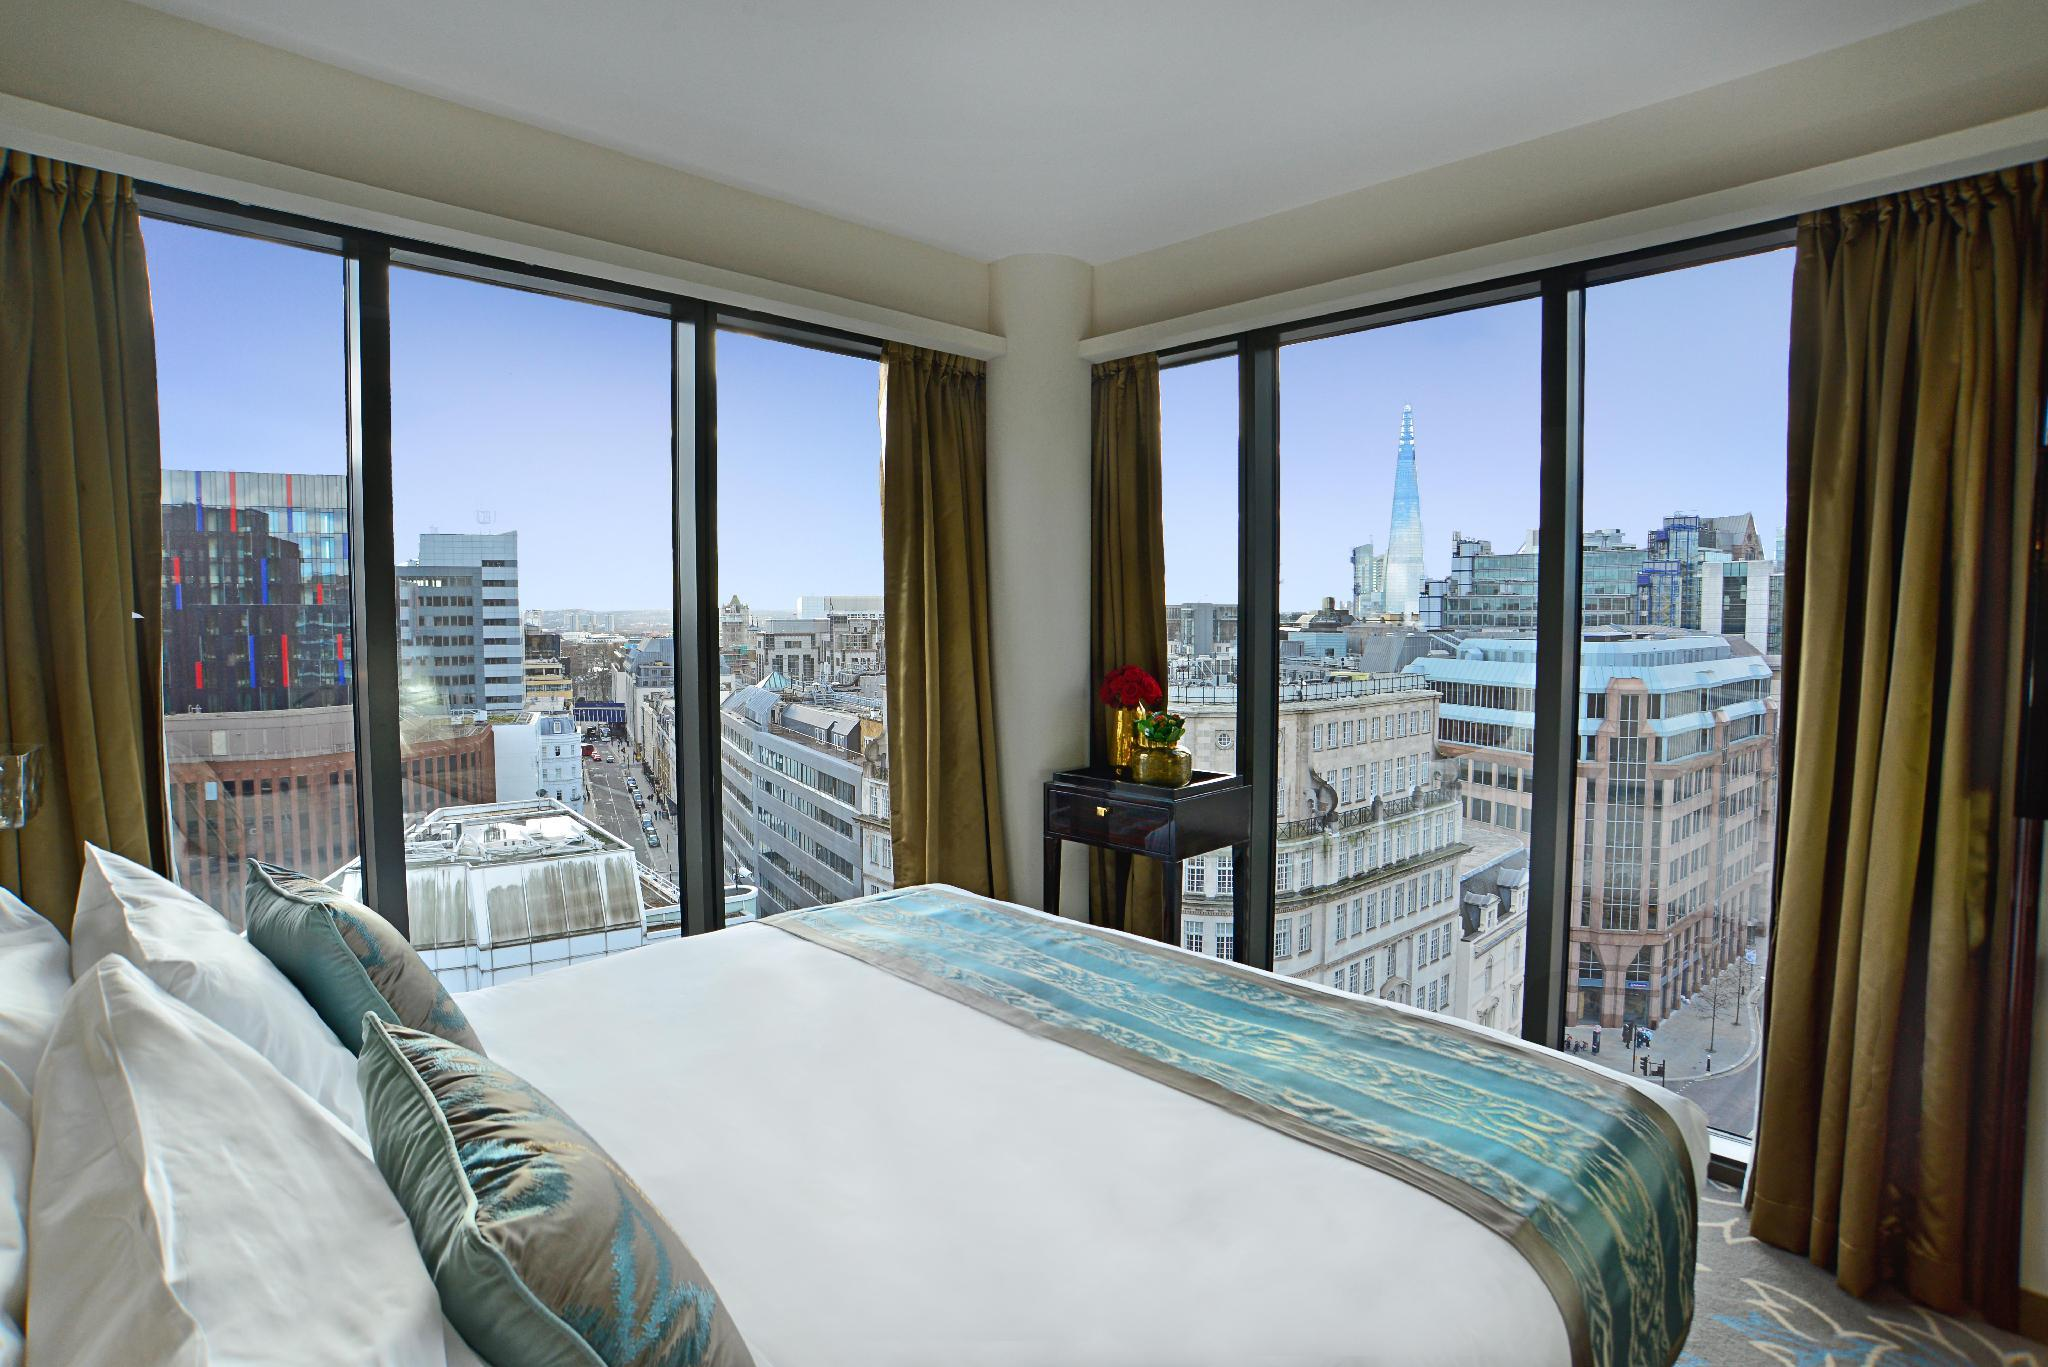 Best Price on Dorsett City London - United Kingdom